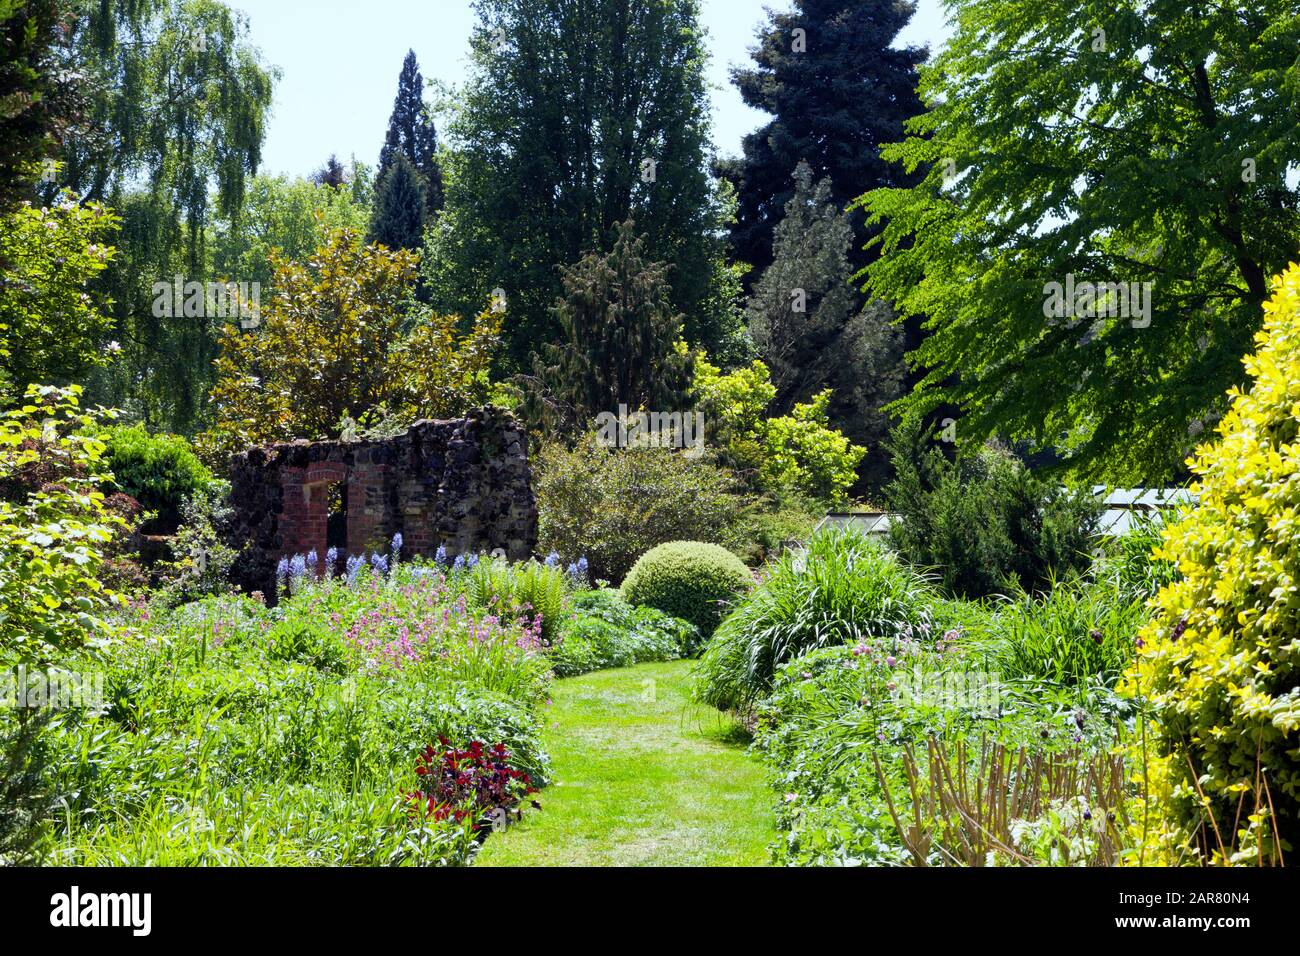 Cottage Flowers Flowering Shrubs And Trees In A Romantic English